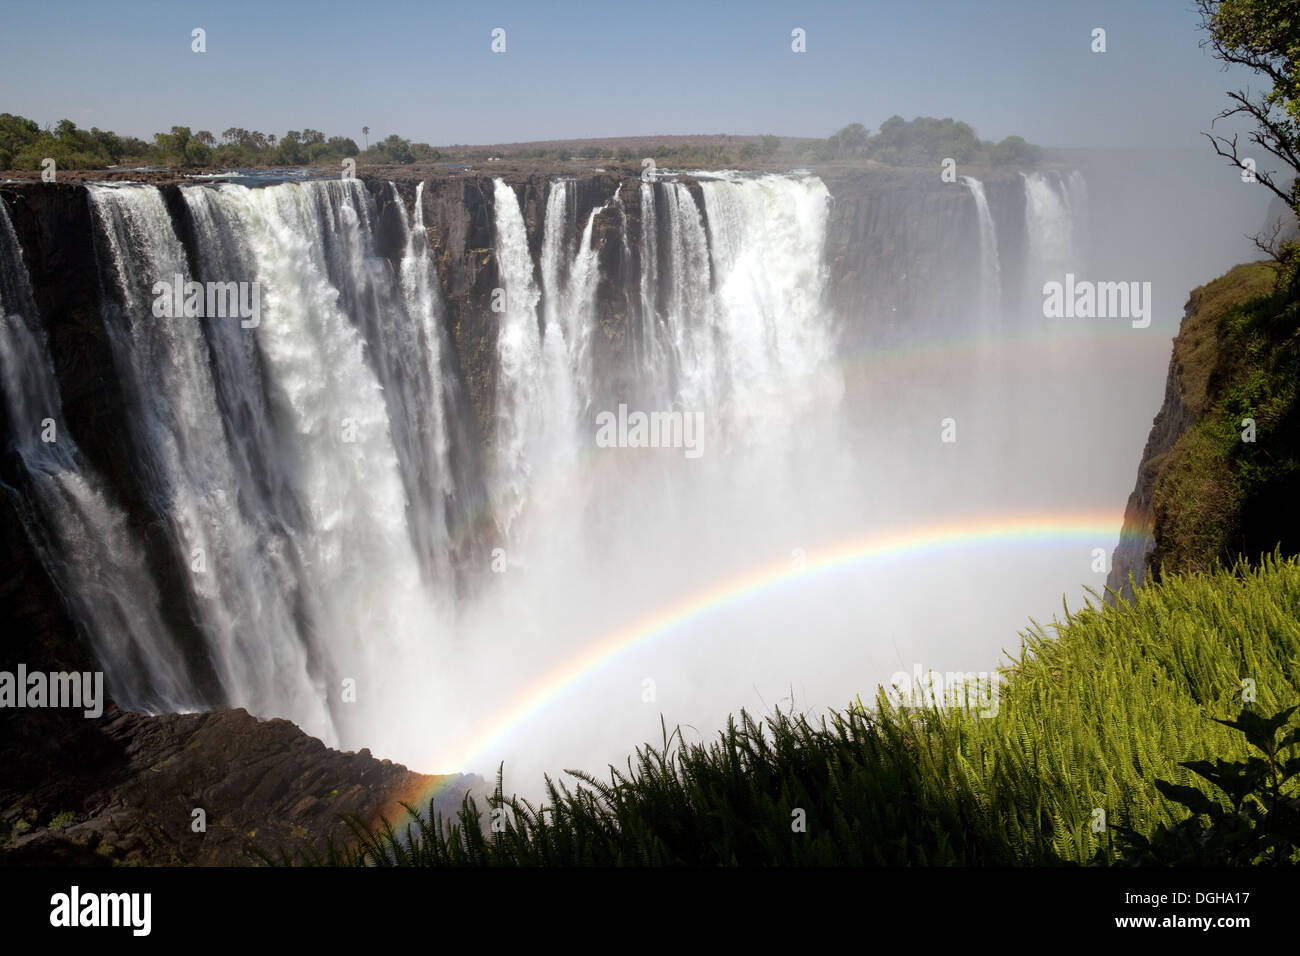 a-double-rainbow-over-the-victoria-falls-zimbabwe-seen-from-the-victoria-DGHA17.jpg